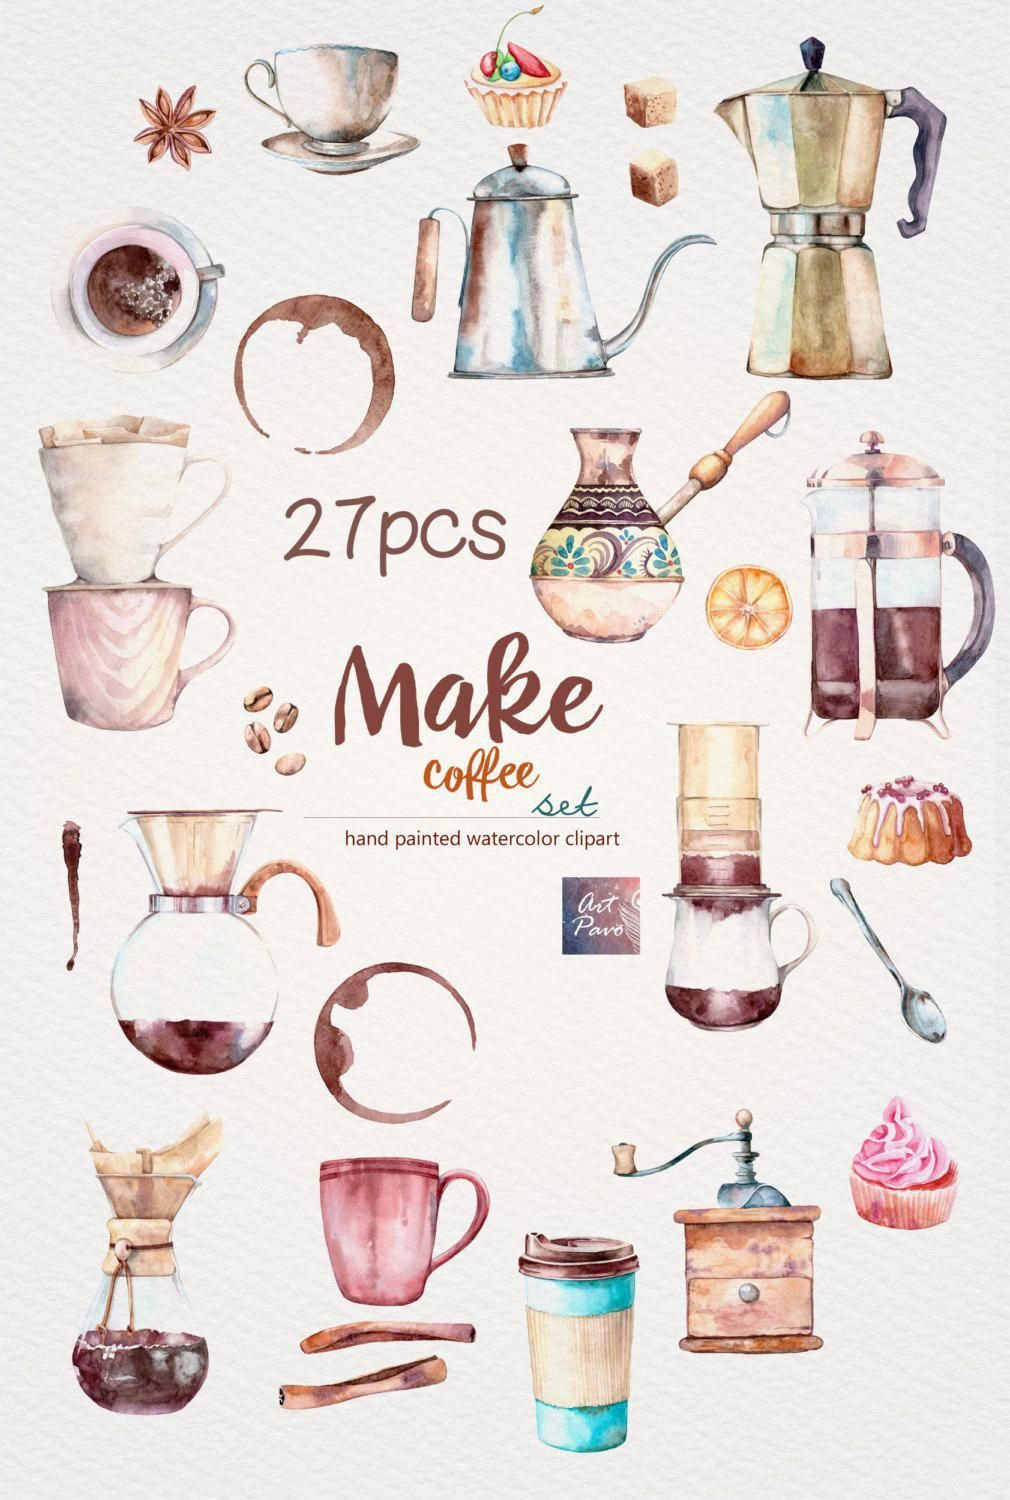 Make Coffee set Sweets and Cups Making Coffee Methods Hand.